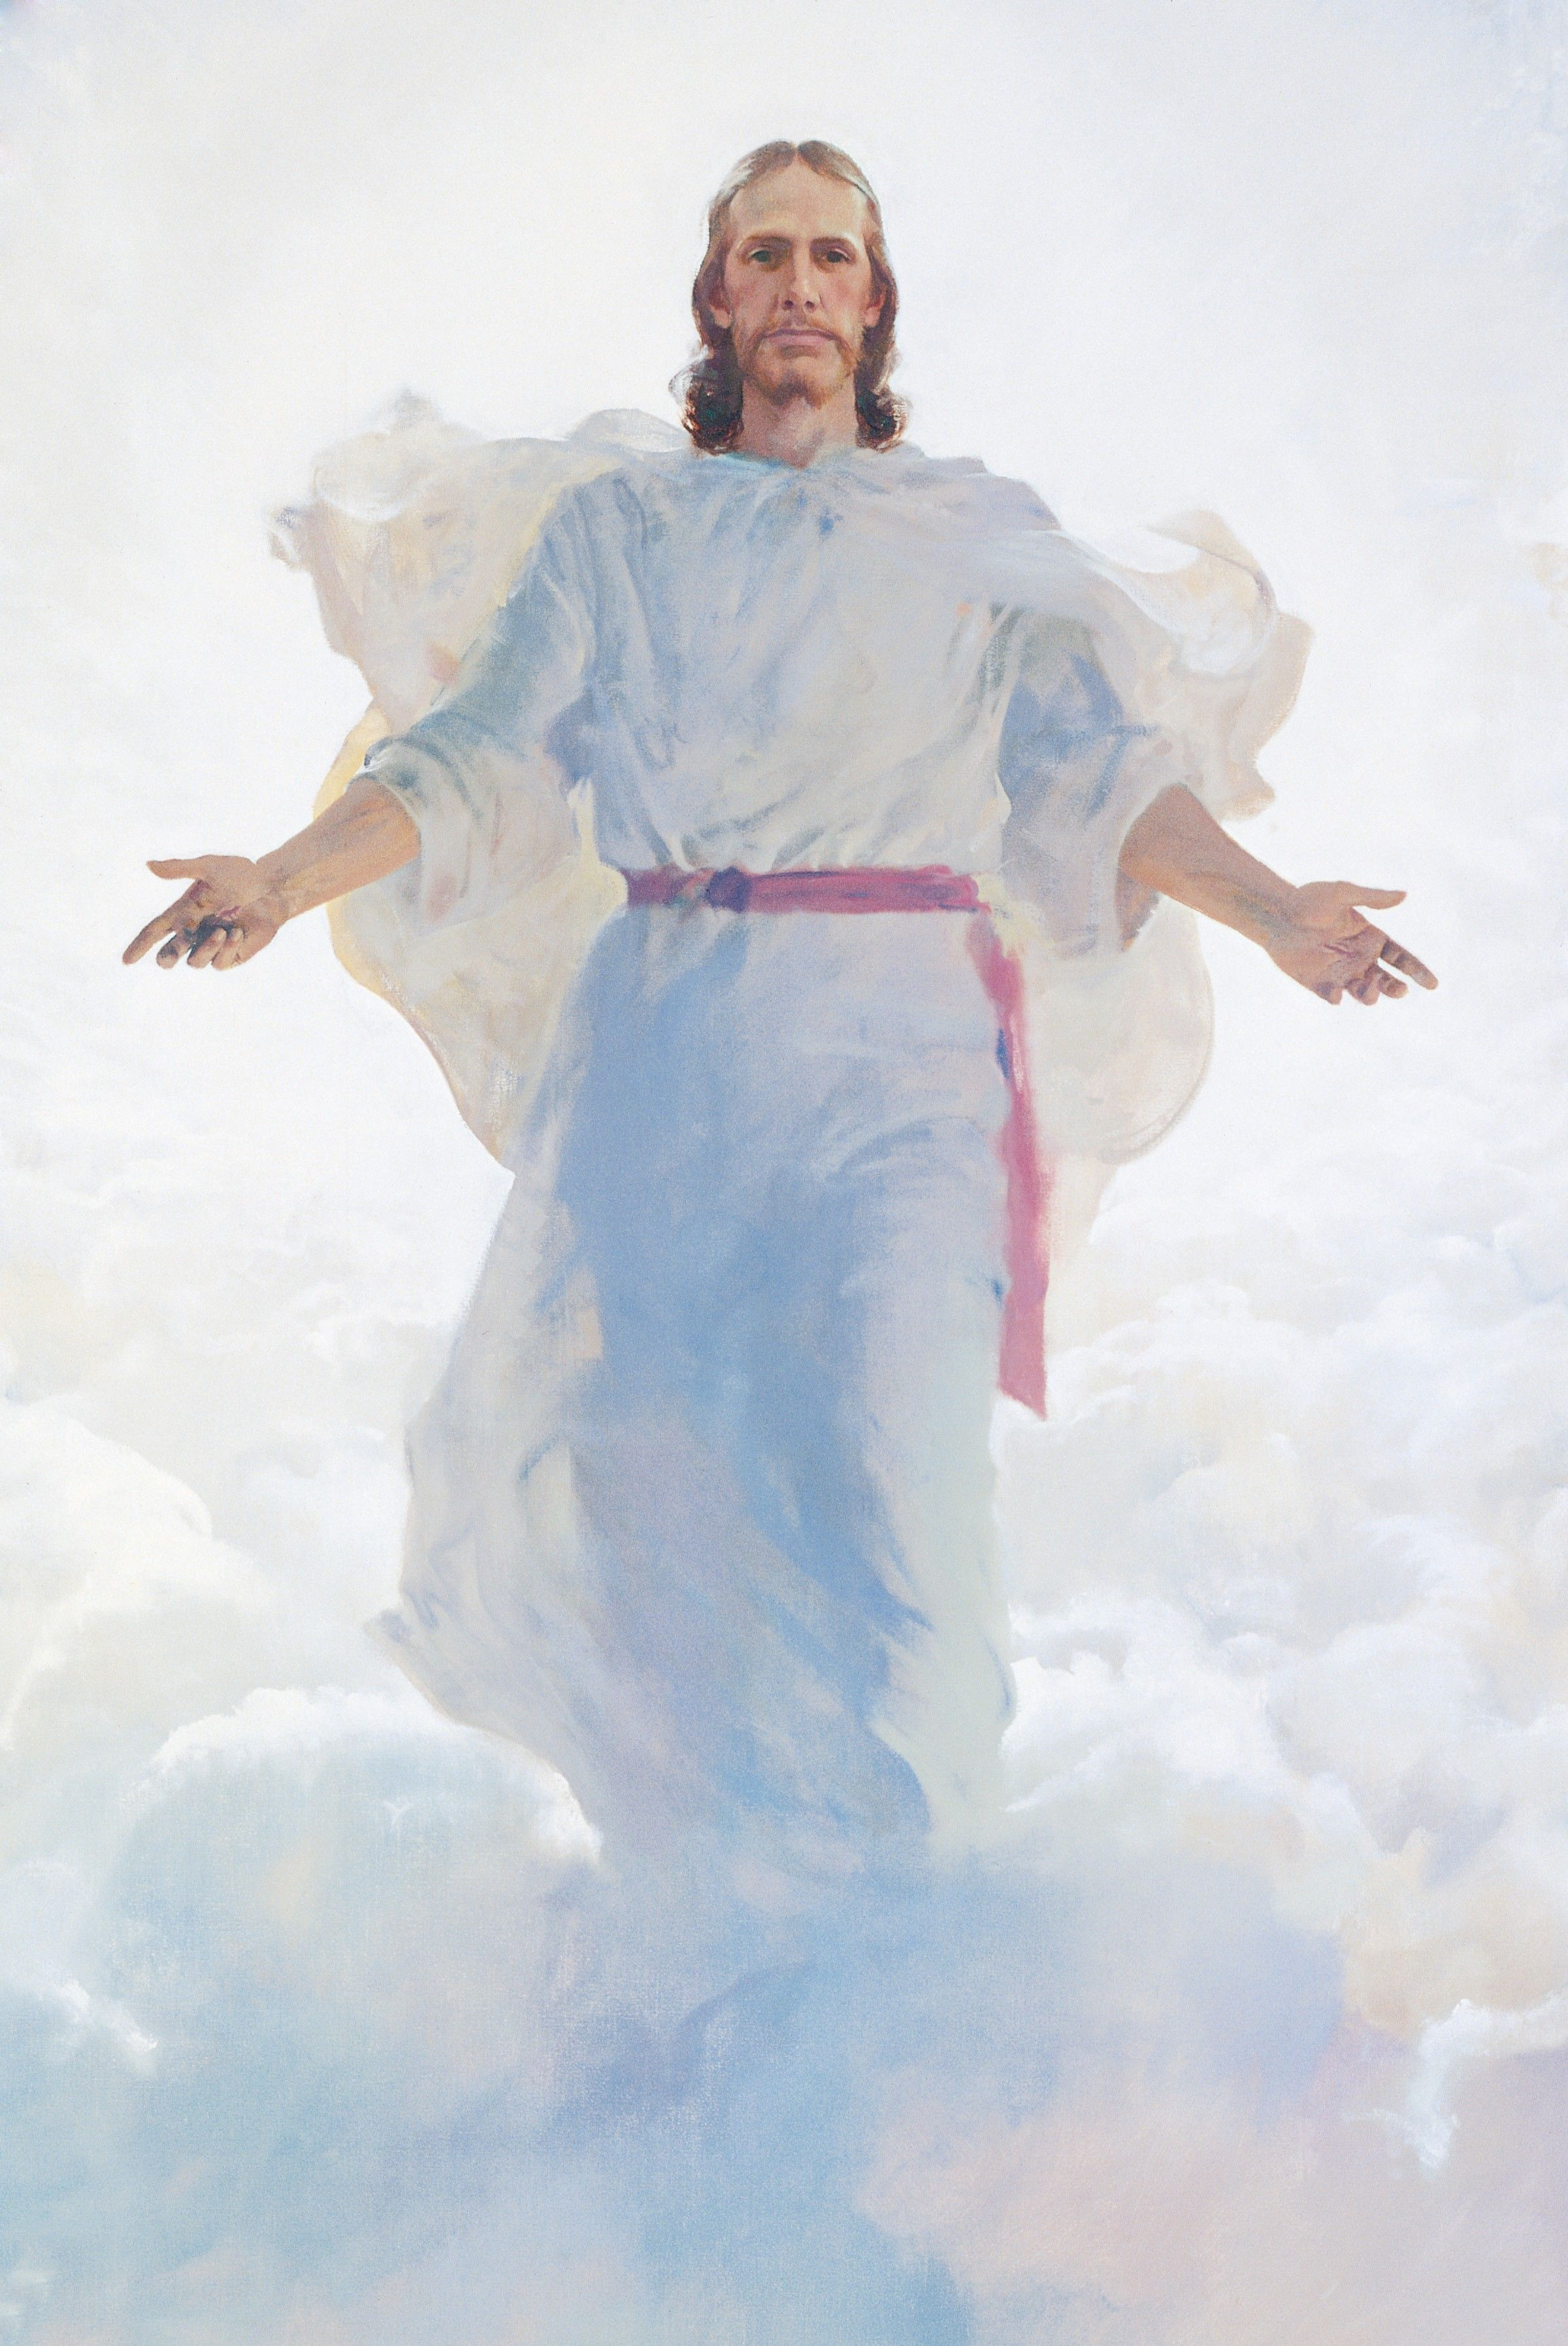 The Resurrected Jesus Christ, by Harry Anderson (62187); GAK 239; Primary manual 2-65; Primary manual 3-15; Primary manual 4-49; Primary manual 6-48; Primary manual 7-37; Primary manual 7-25; Matthew 16:27; 24:30–31; 25:31